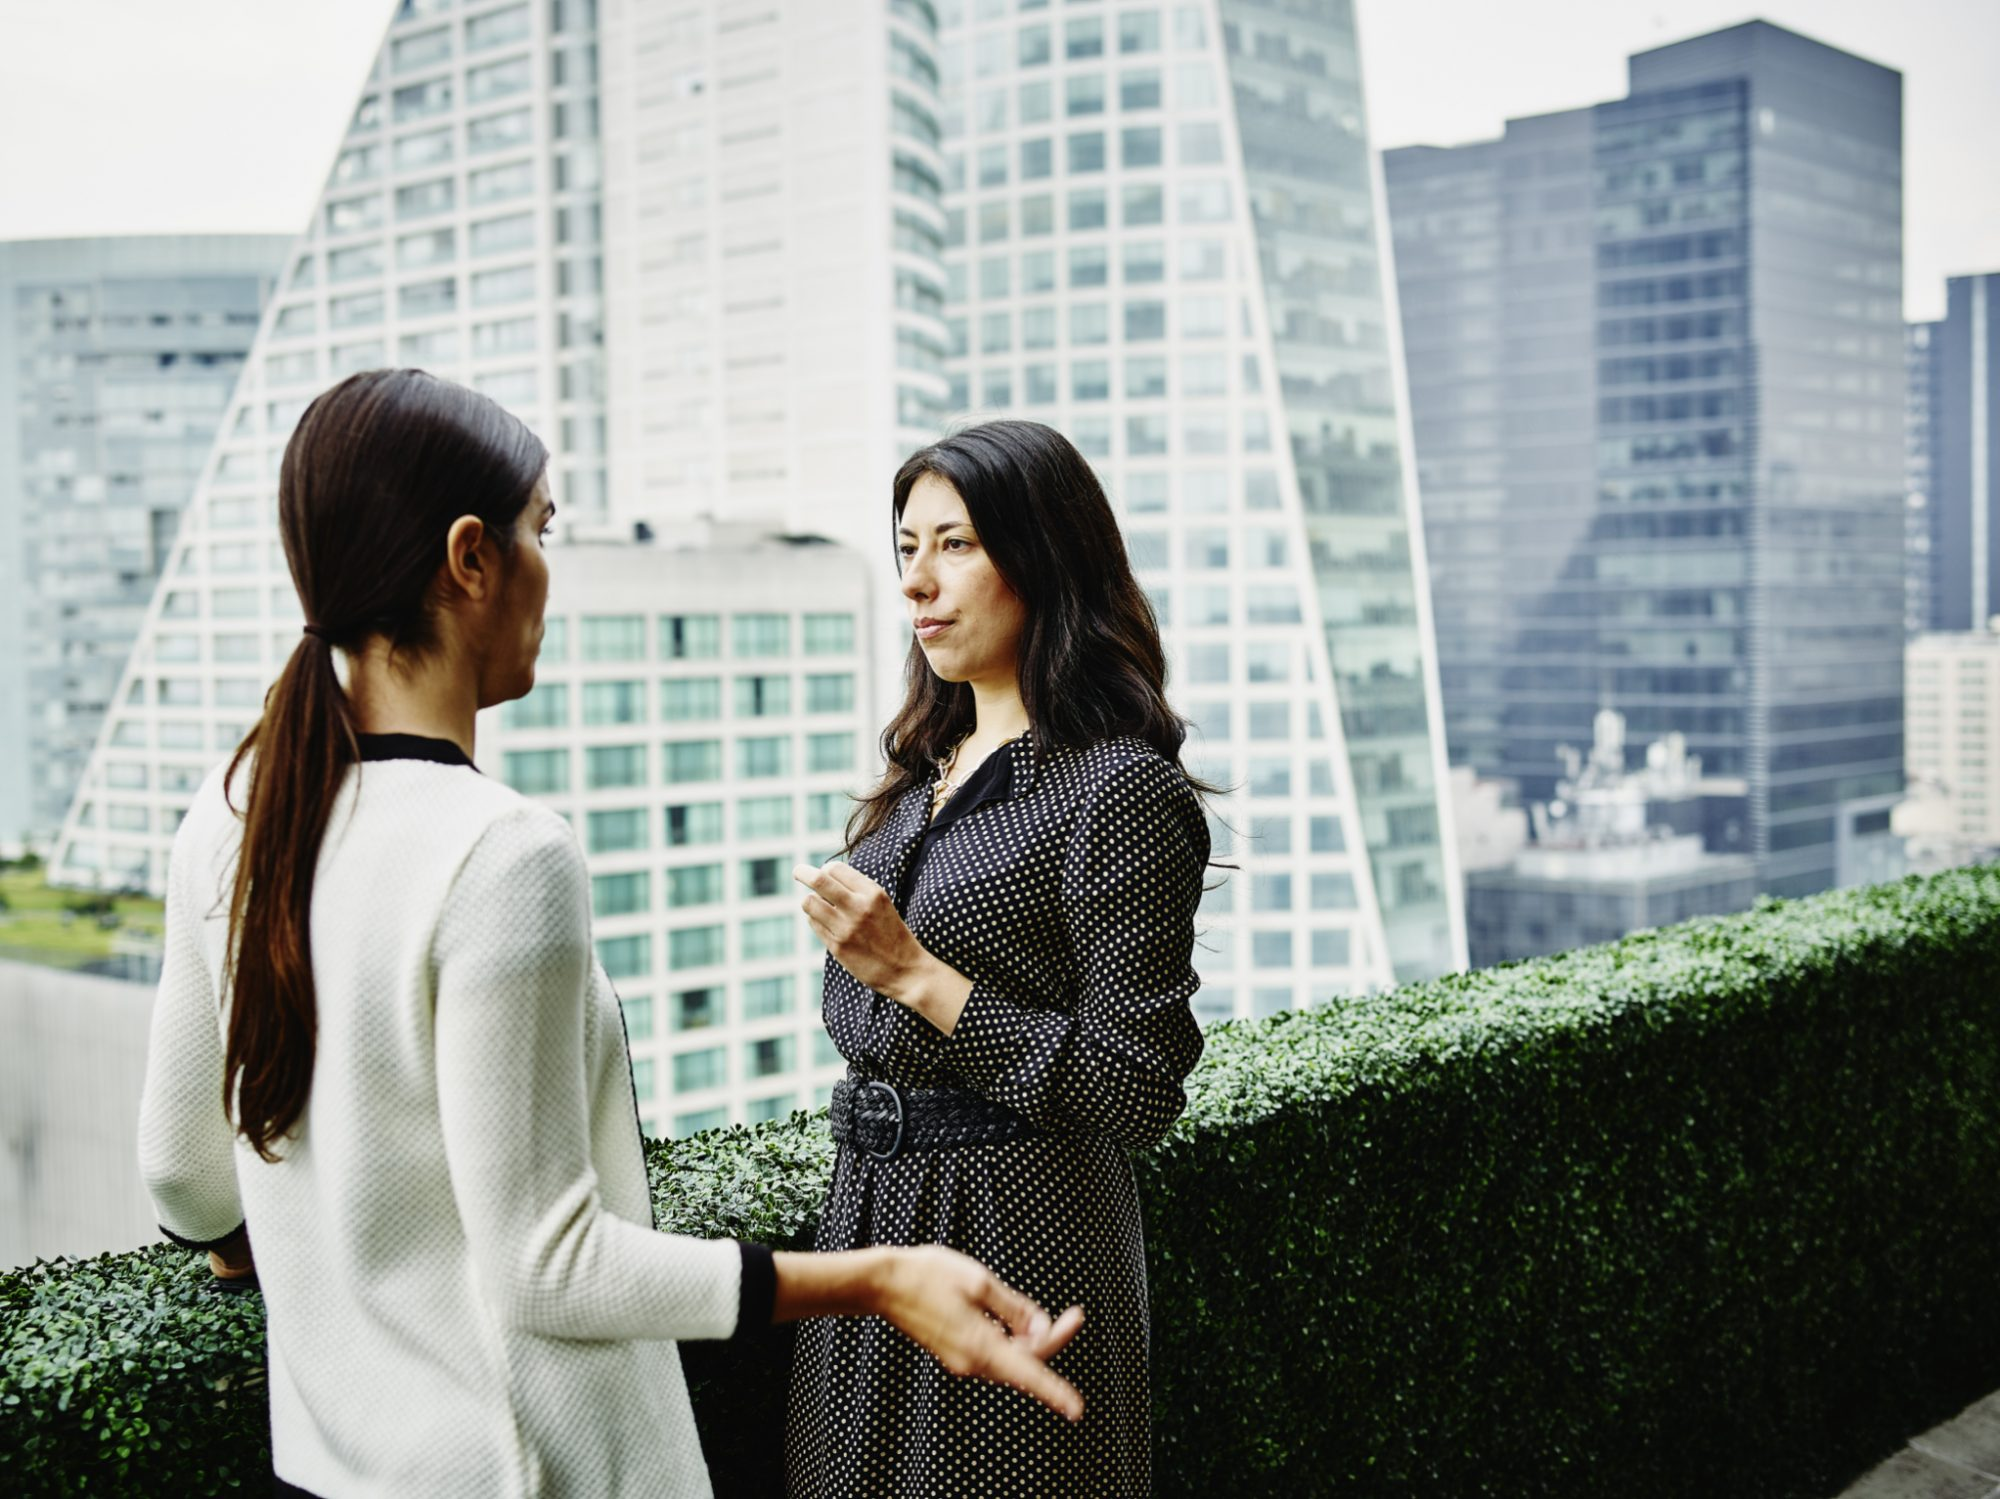 Female business executives in discussion